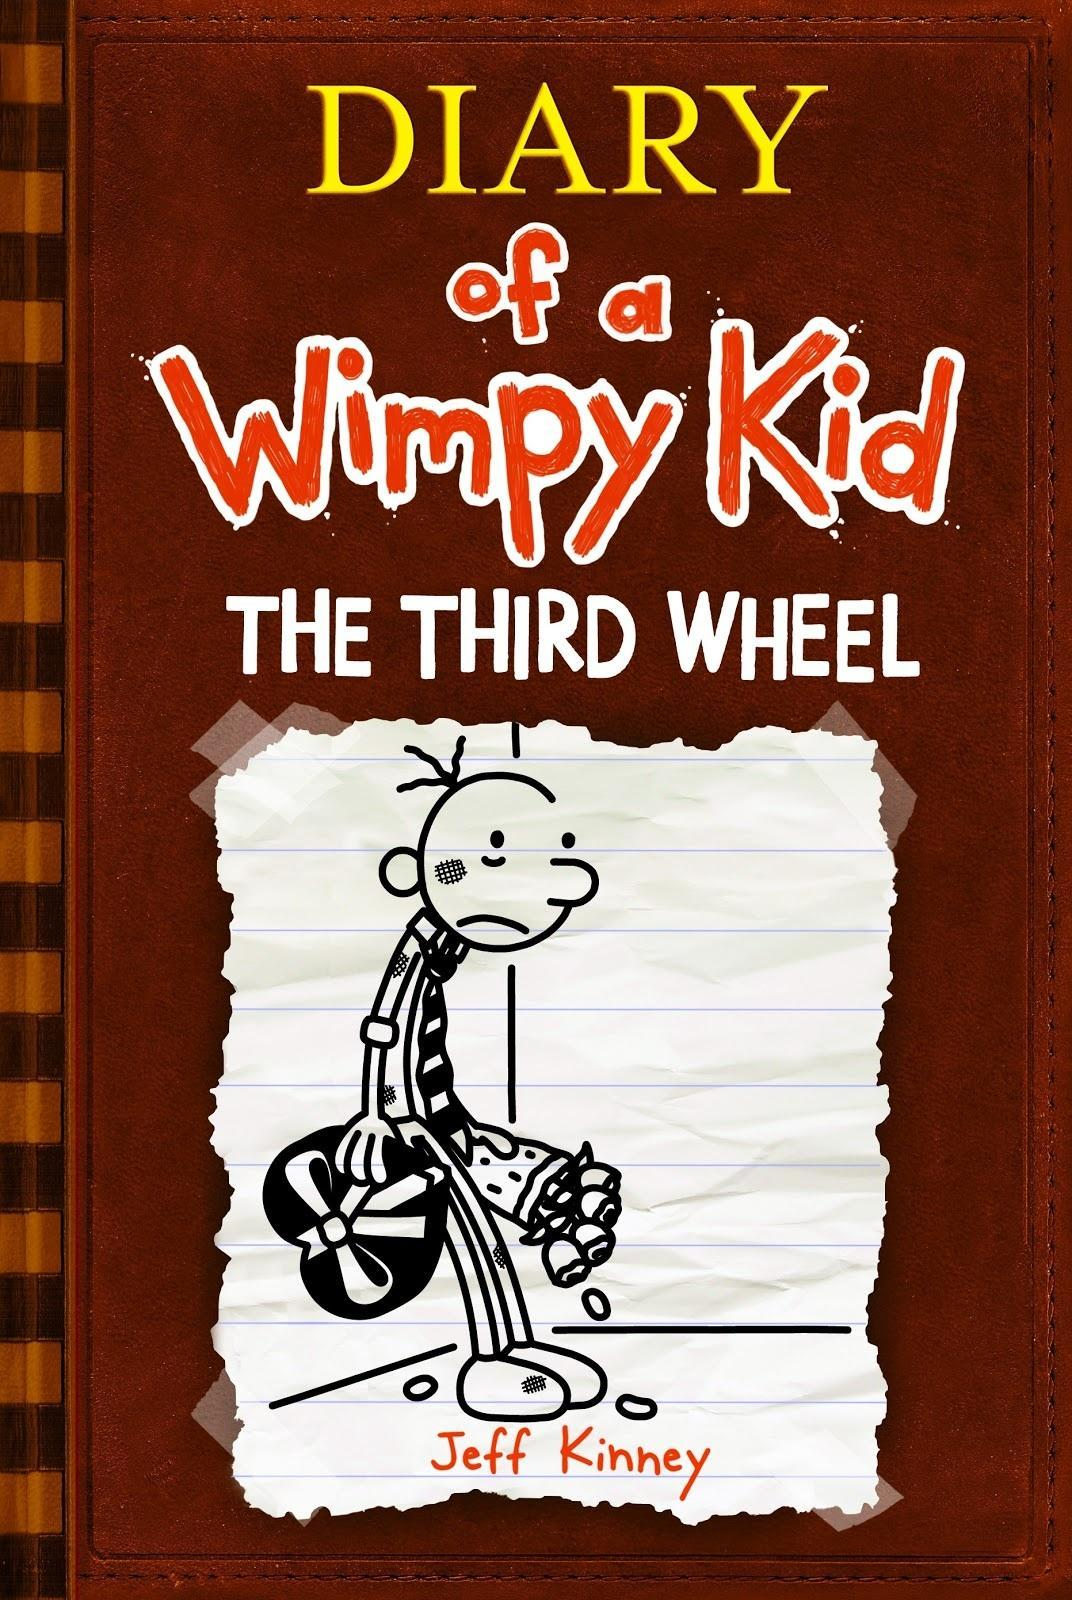 What do you think of diary of a wimpy kid?